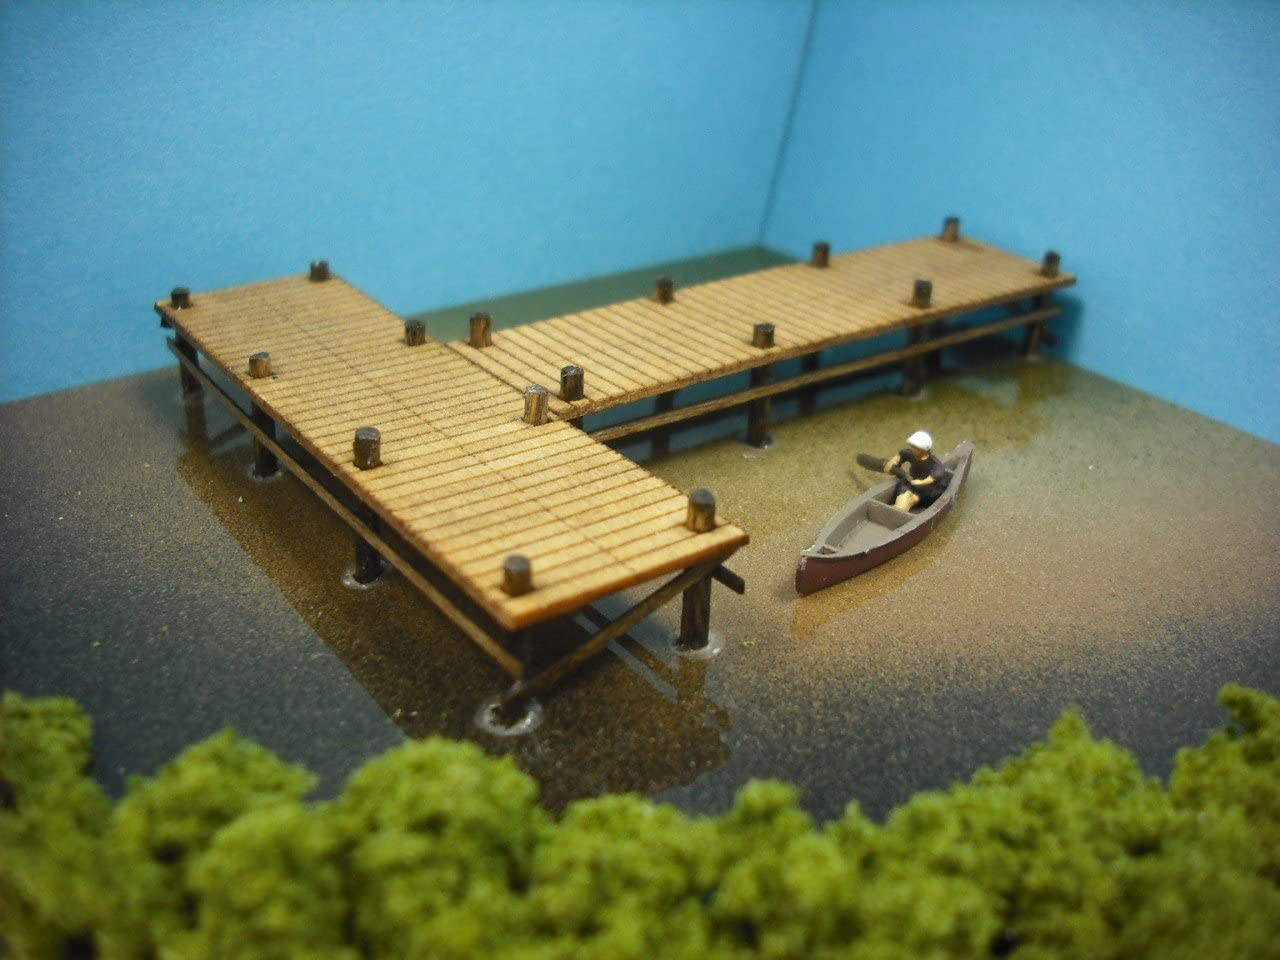 N scale Railway Layout Boat /& Wharf Dock miniatures model